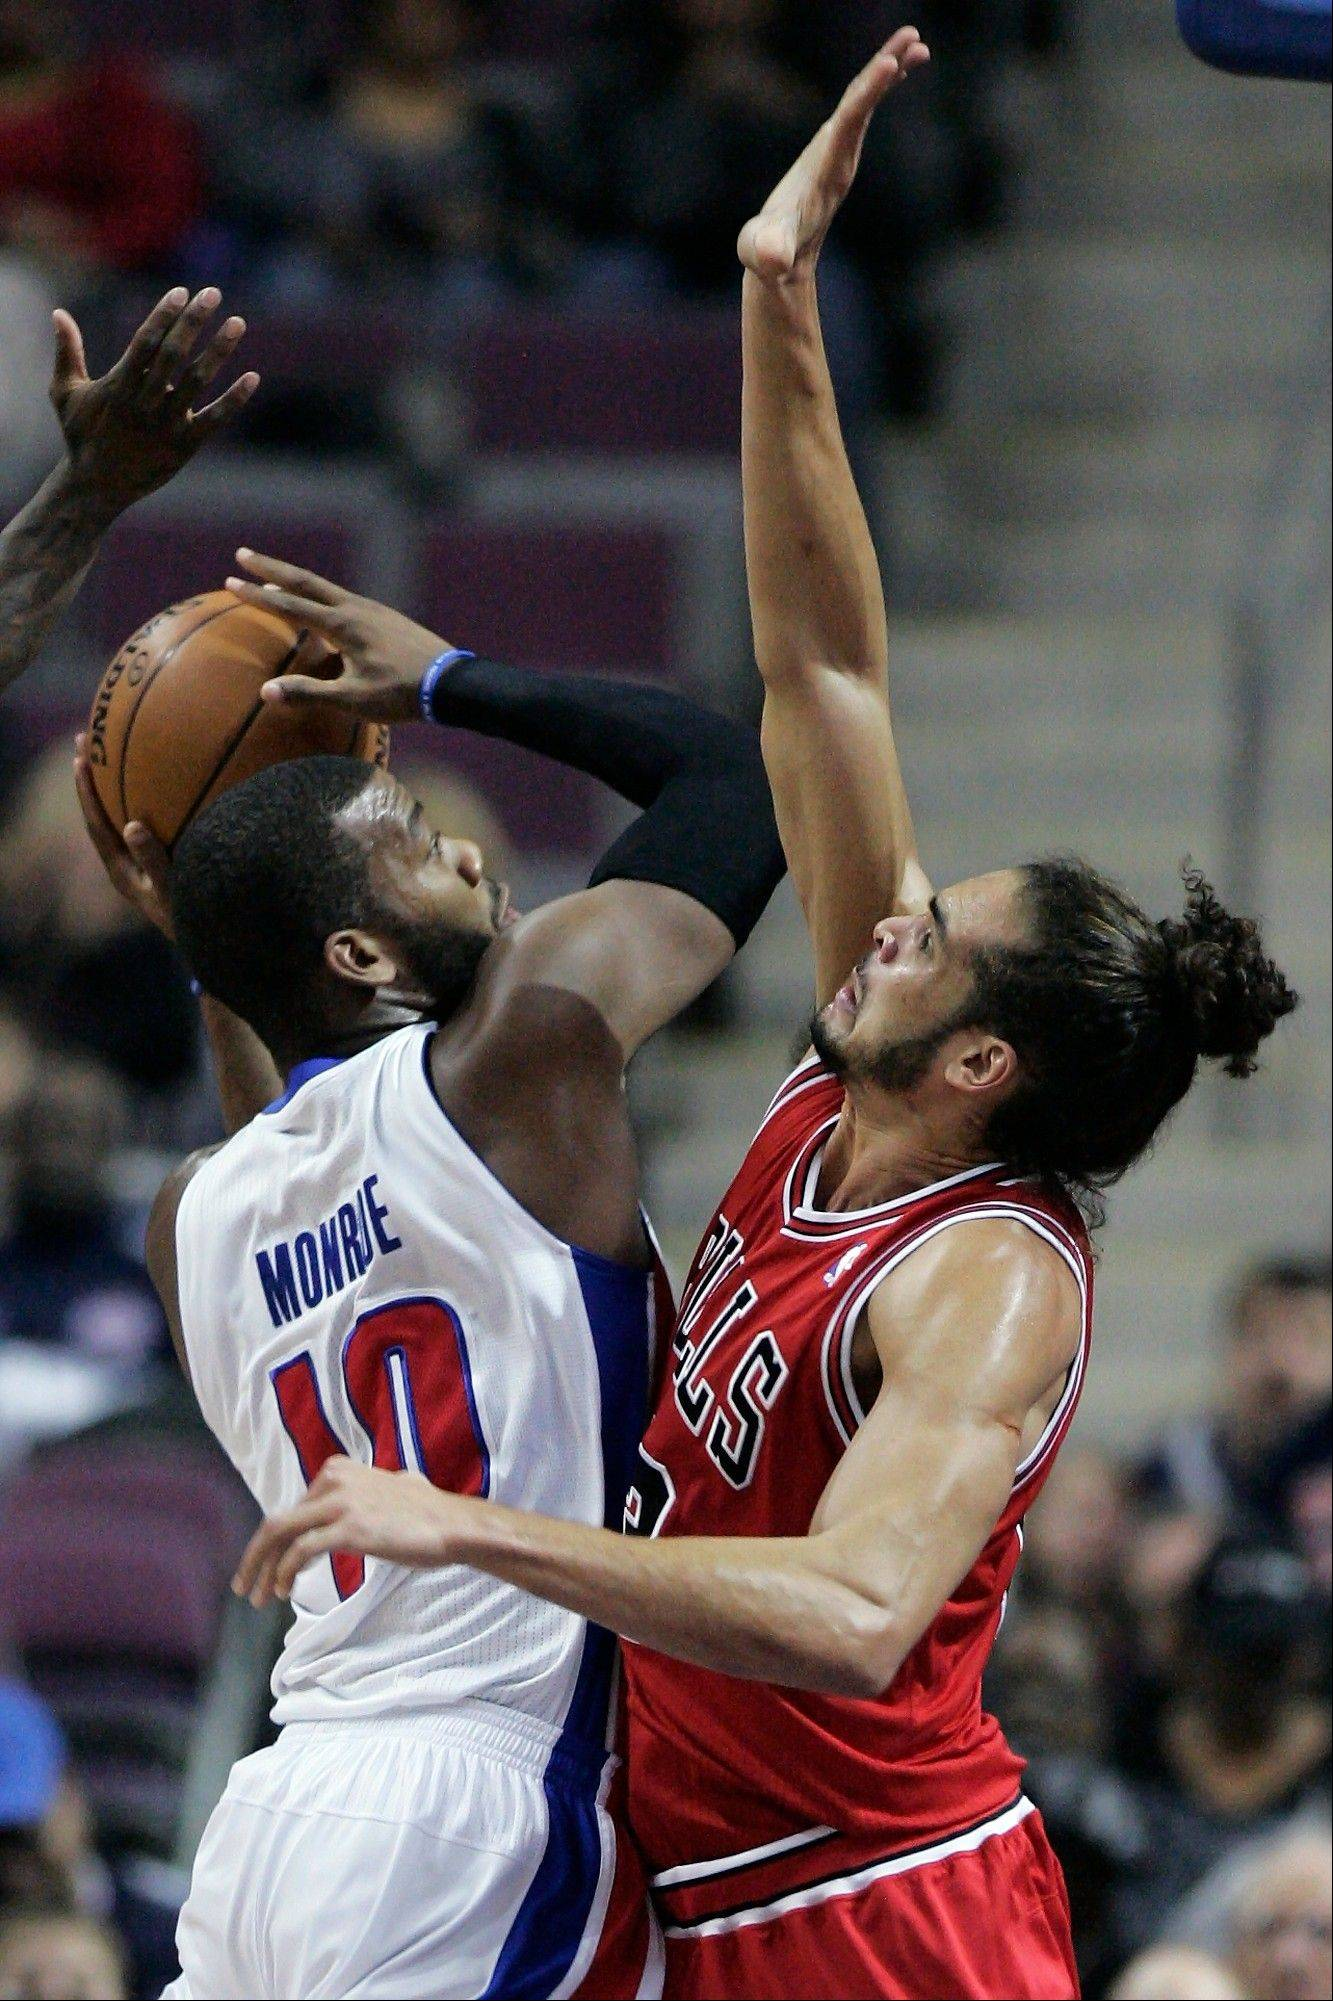 Detroit Pistons center Greg Monroe (10) tries going to the basket against Bulls center Joakim Noah during the first half in Auburn Hills, Mich.